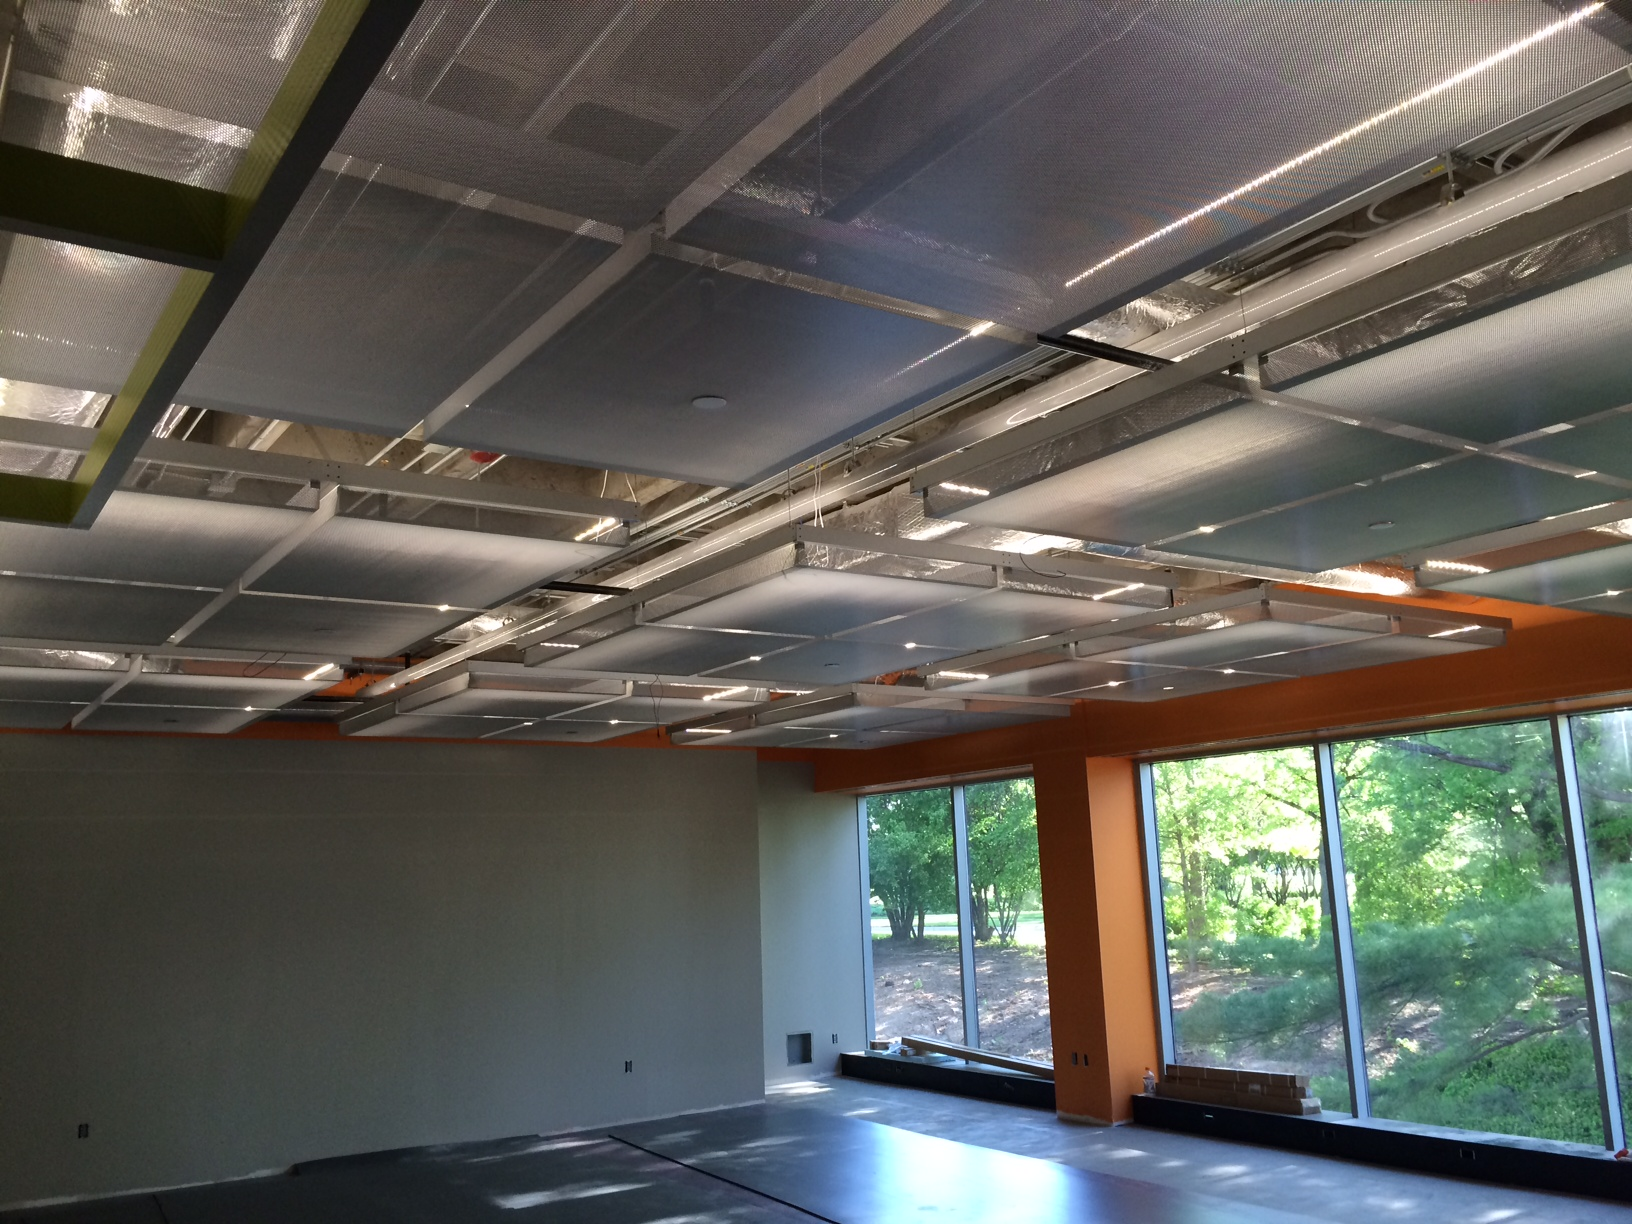 Perforated Cieling Panels and Grid System- ACT Wellness Center, Iowa City IA